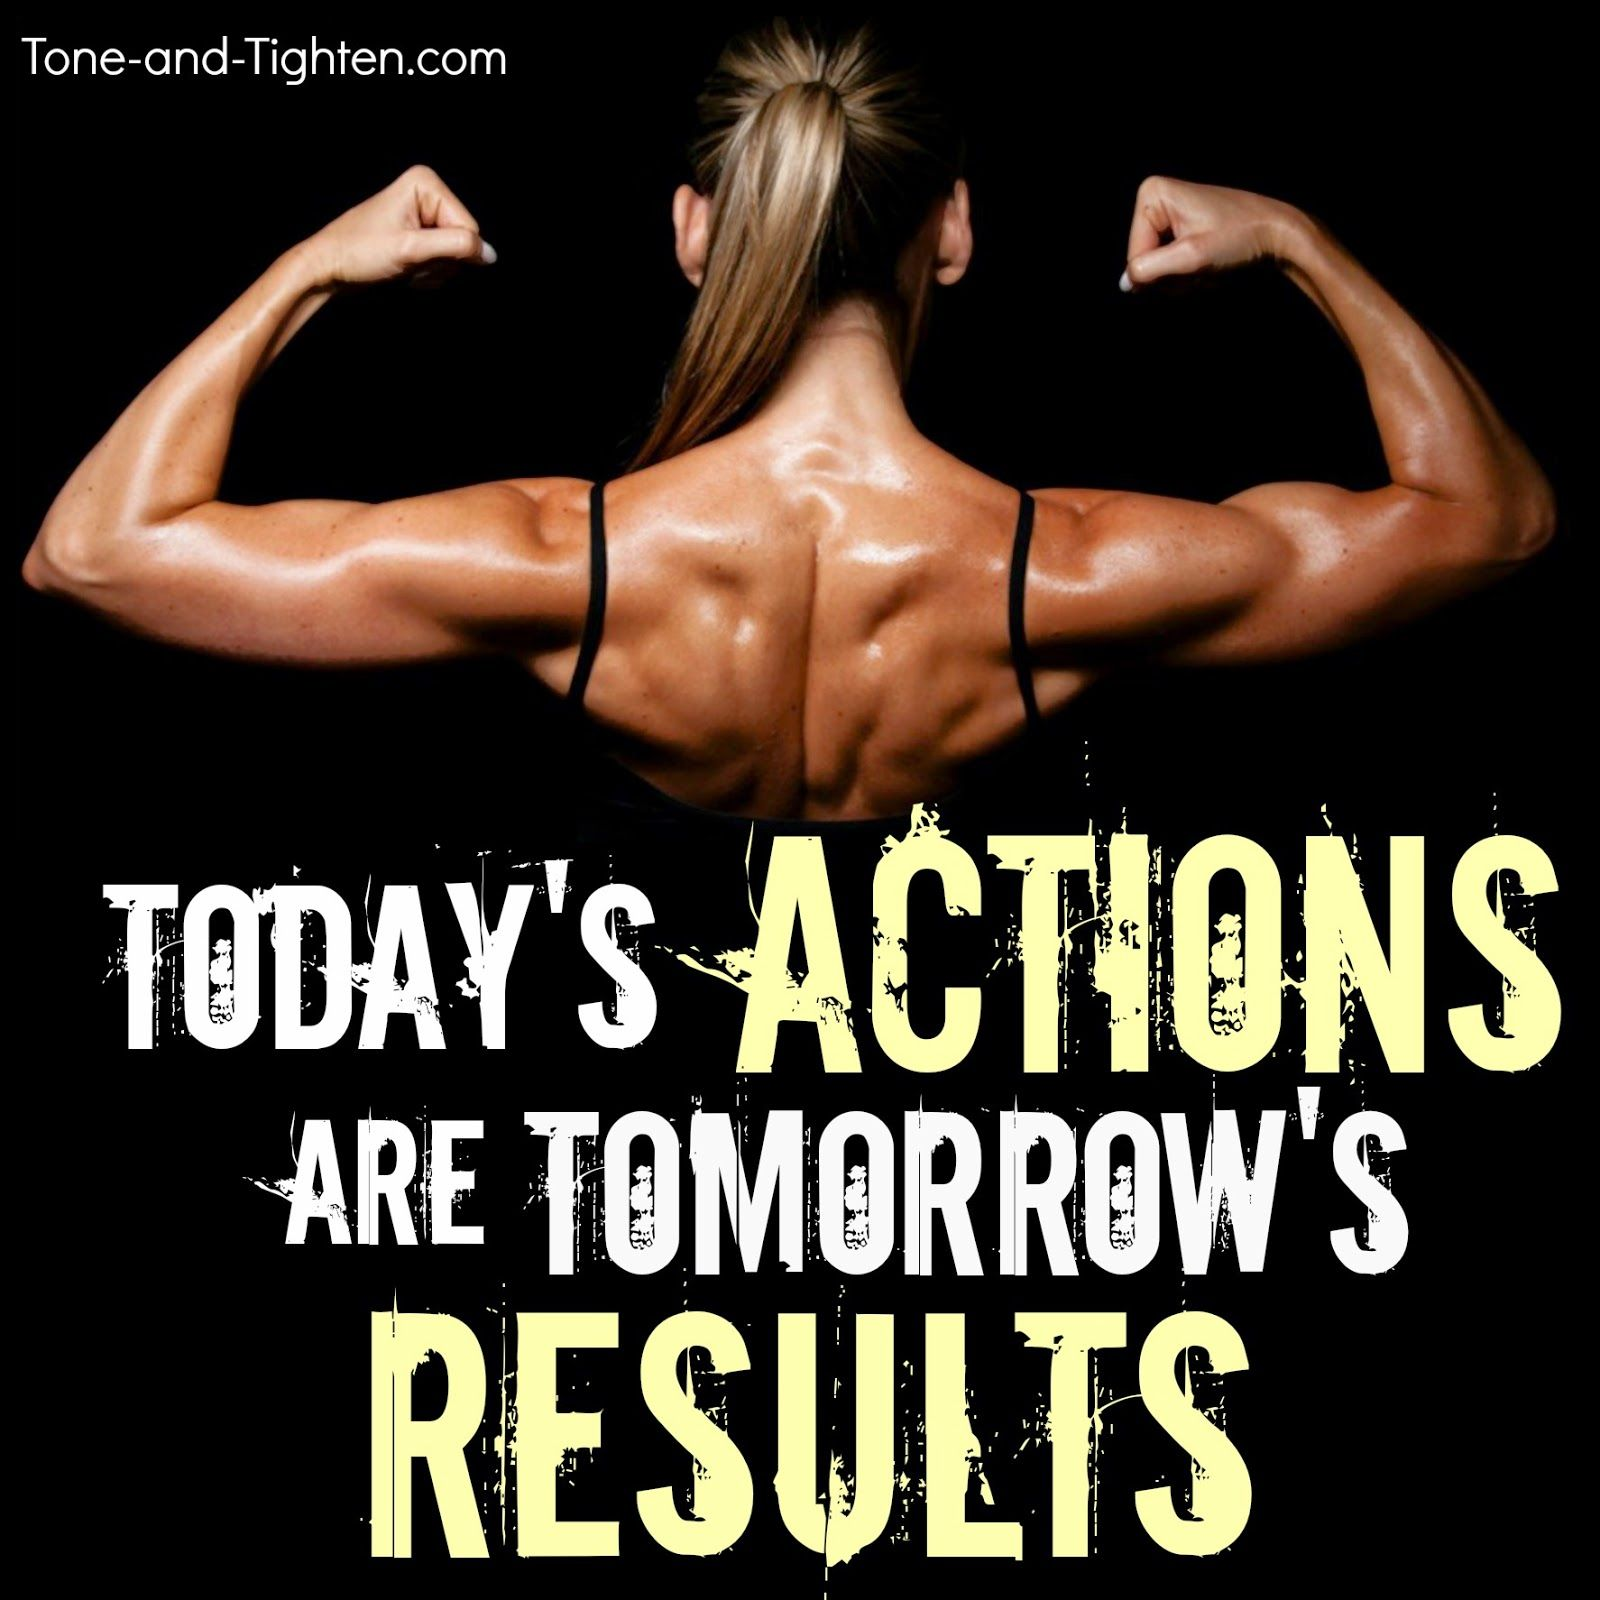 Love Quotes About Life: Work Today To Enjoy Tomorrow. Fitness Motivation From Tone